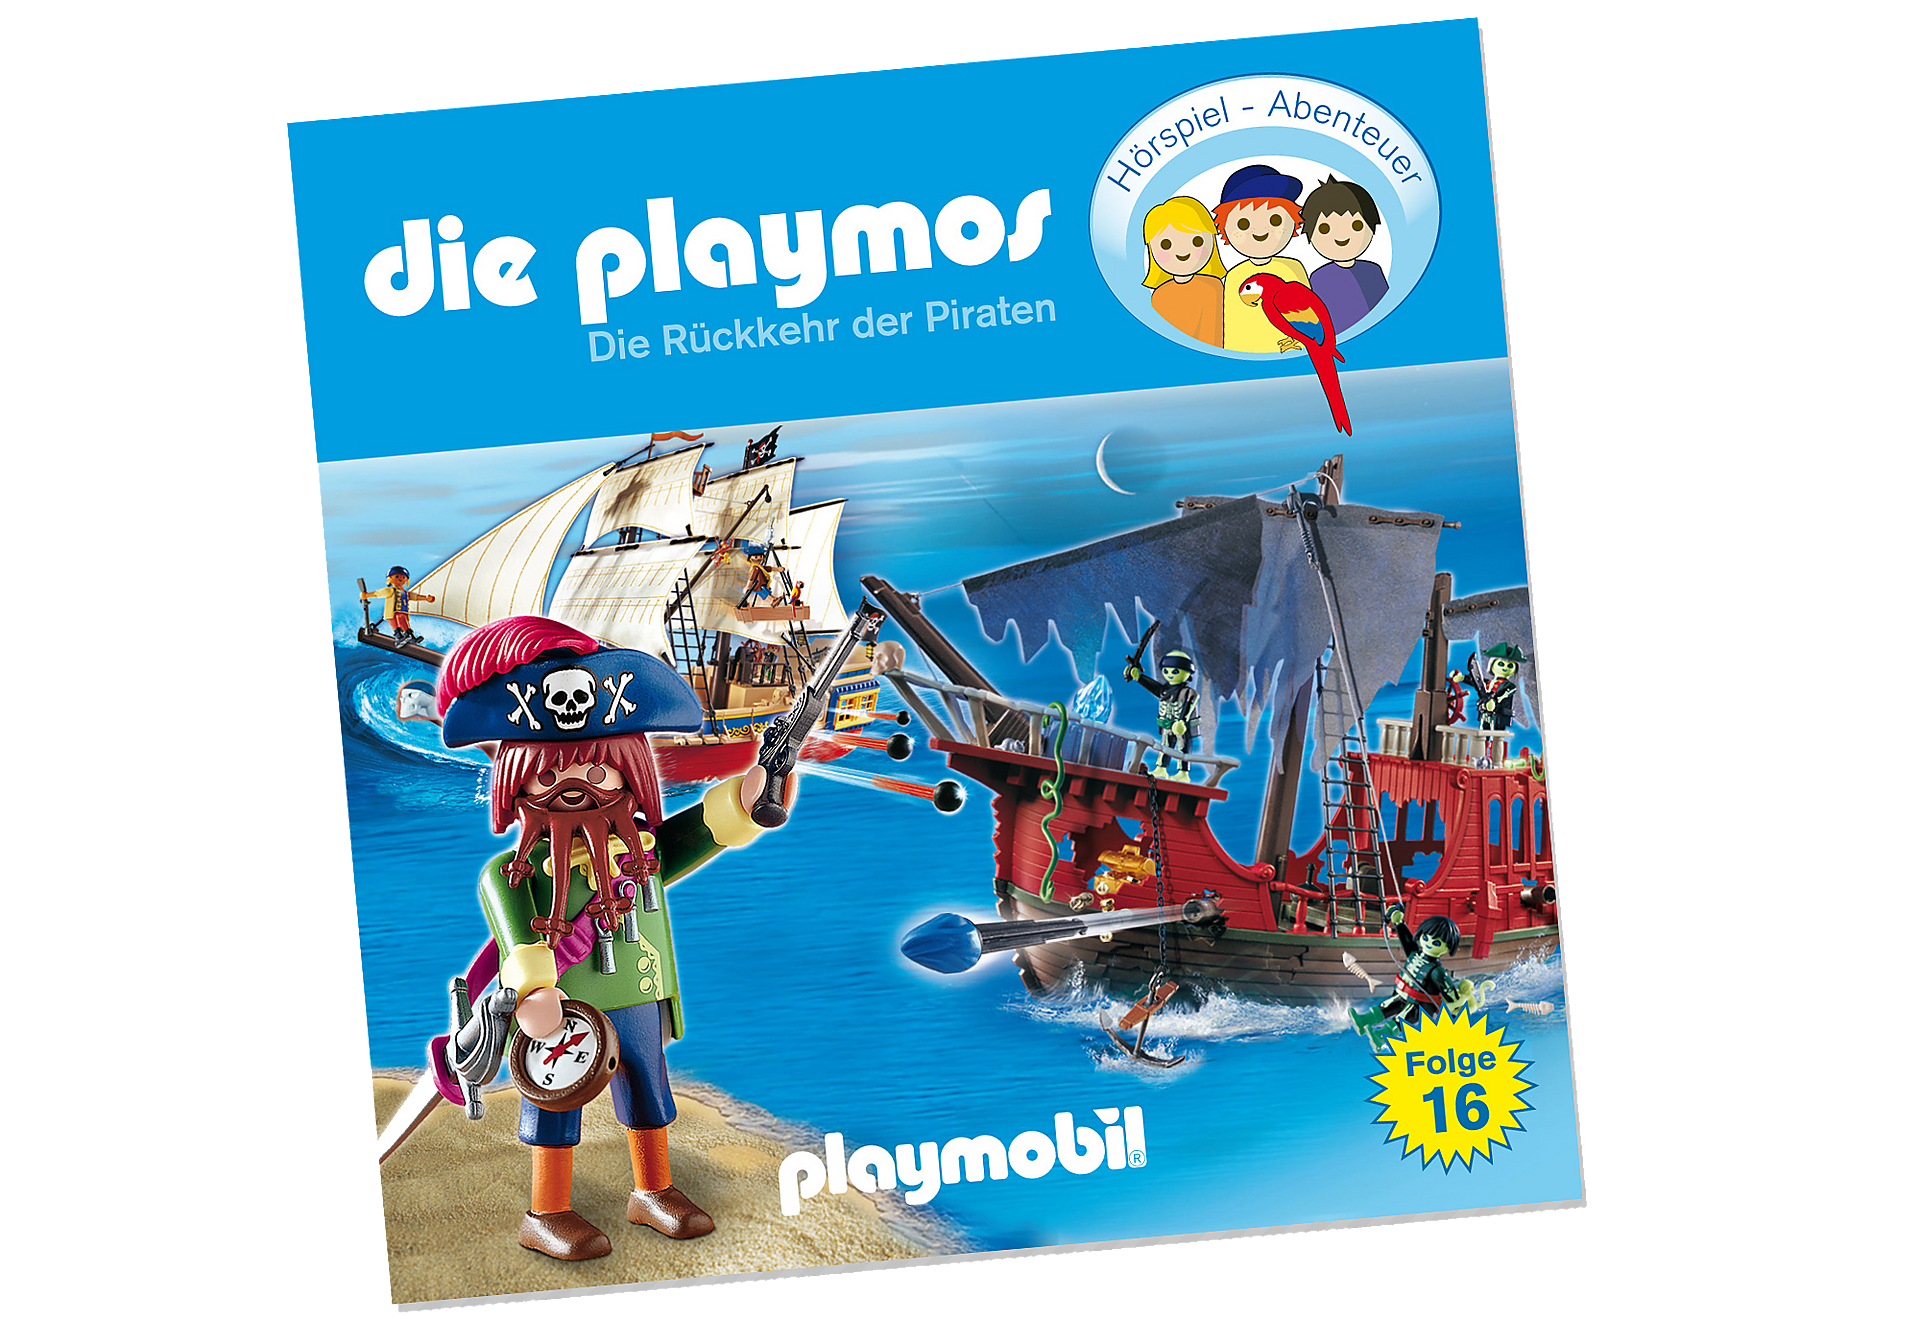 http://media.playmobil.com/i/playmobil/80262_product_detail/Die Rückkehr der Piraten (16) - CD